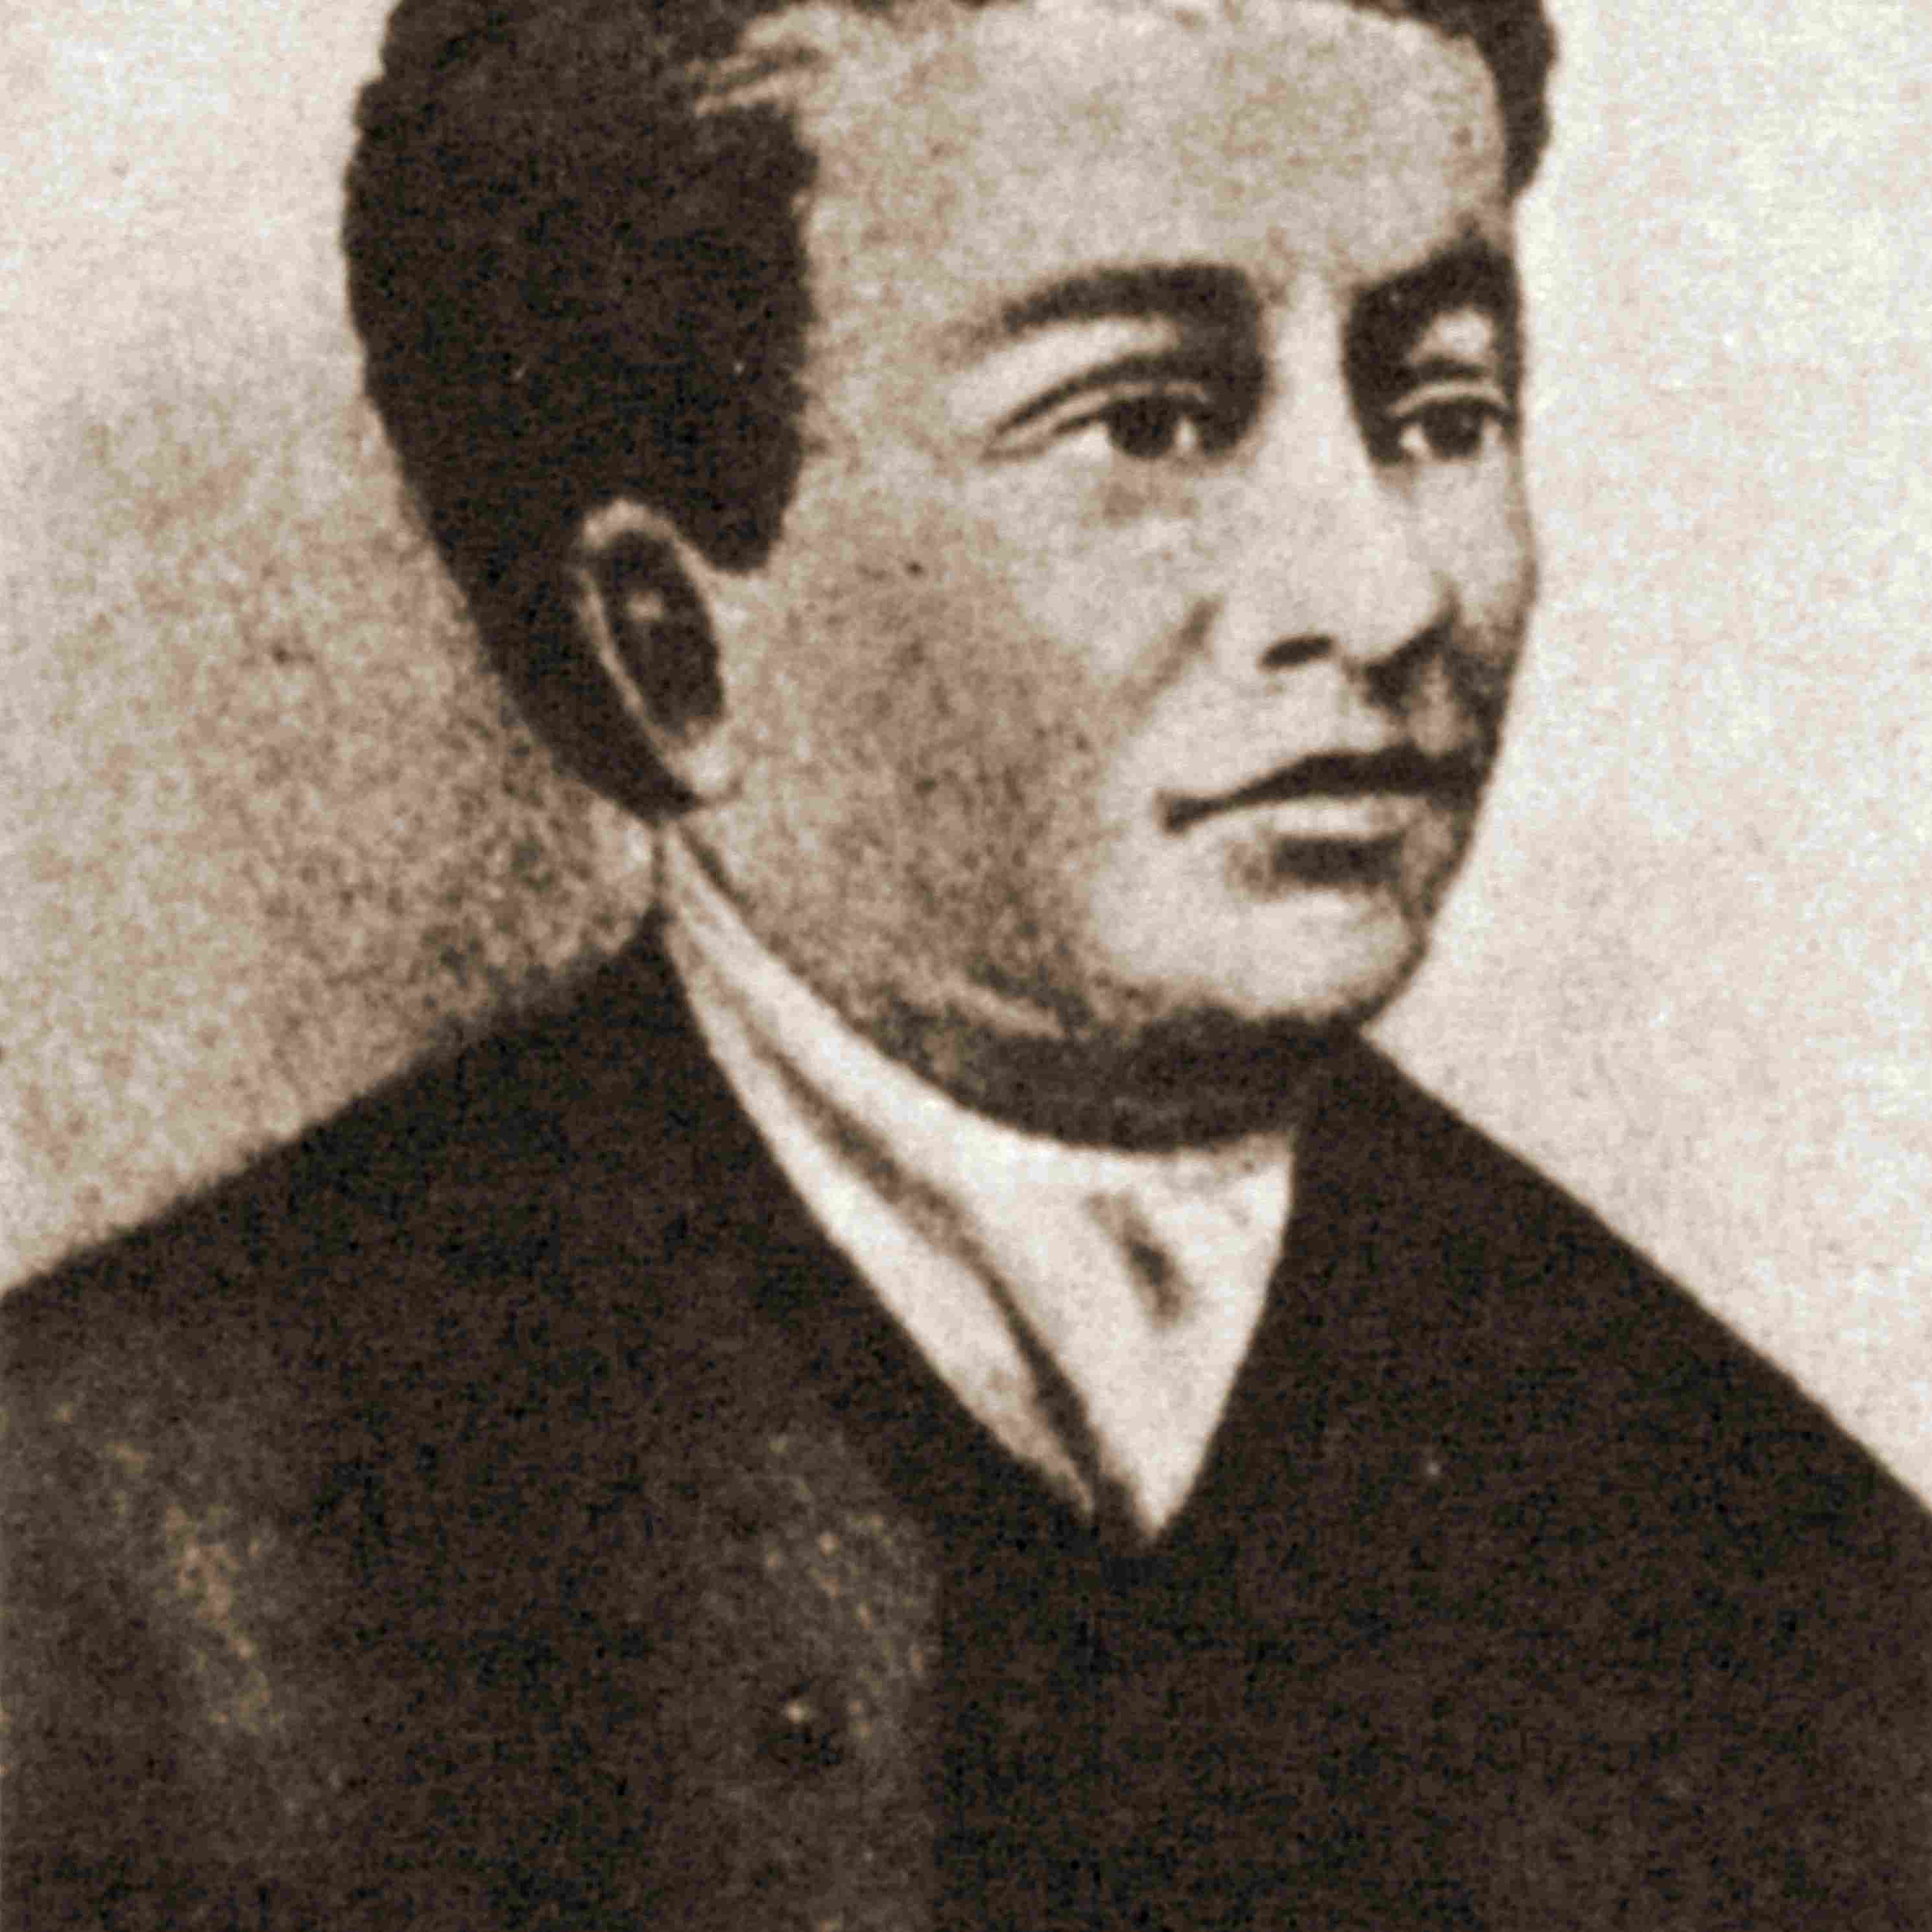 Illustrated portrait of American author, astronomer, and farmer Benjamin Banneker (1731 - 1806), mid to late 18th century.(Photo by Stock Montage/Getty Images)